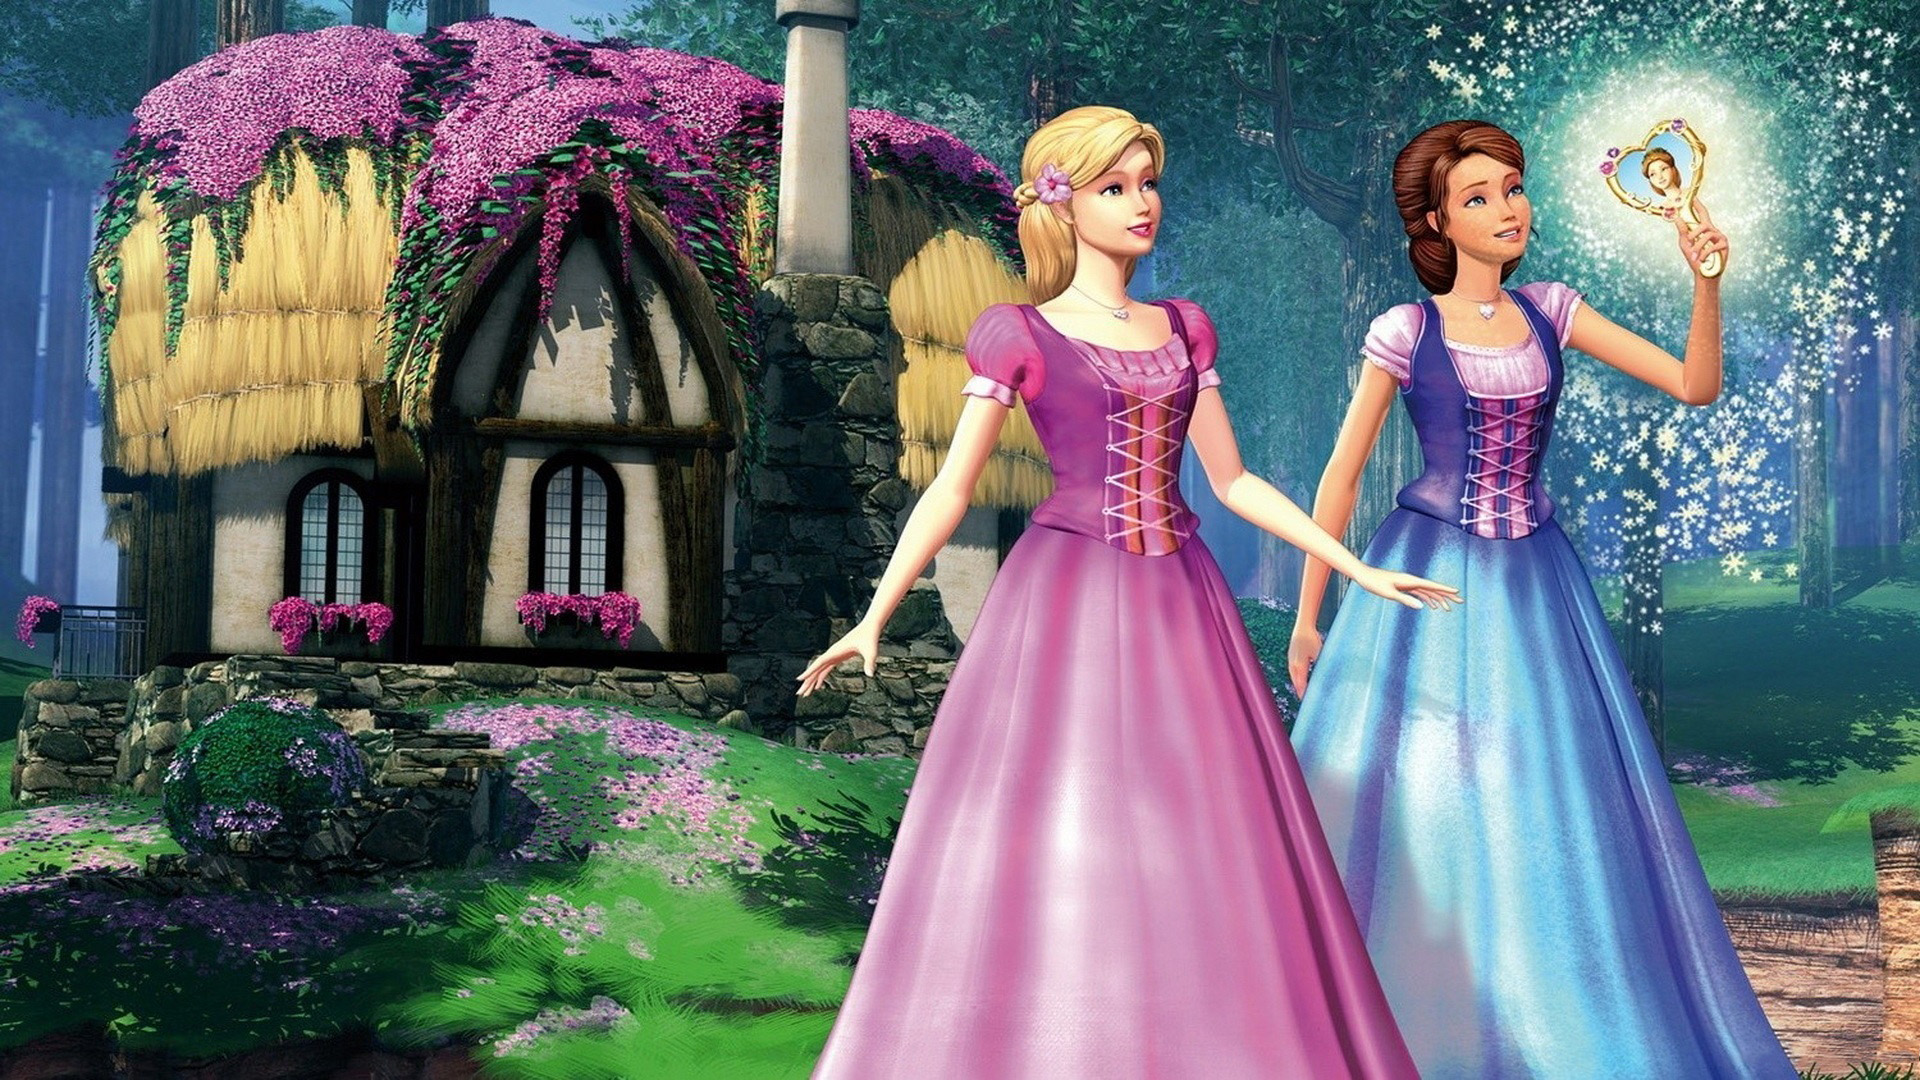 barbie and the diamond castle movie free download